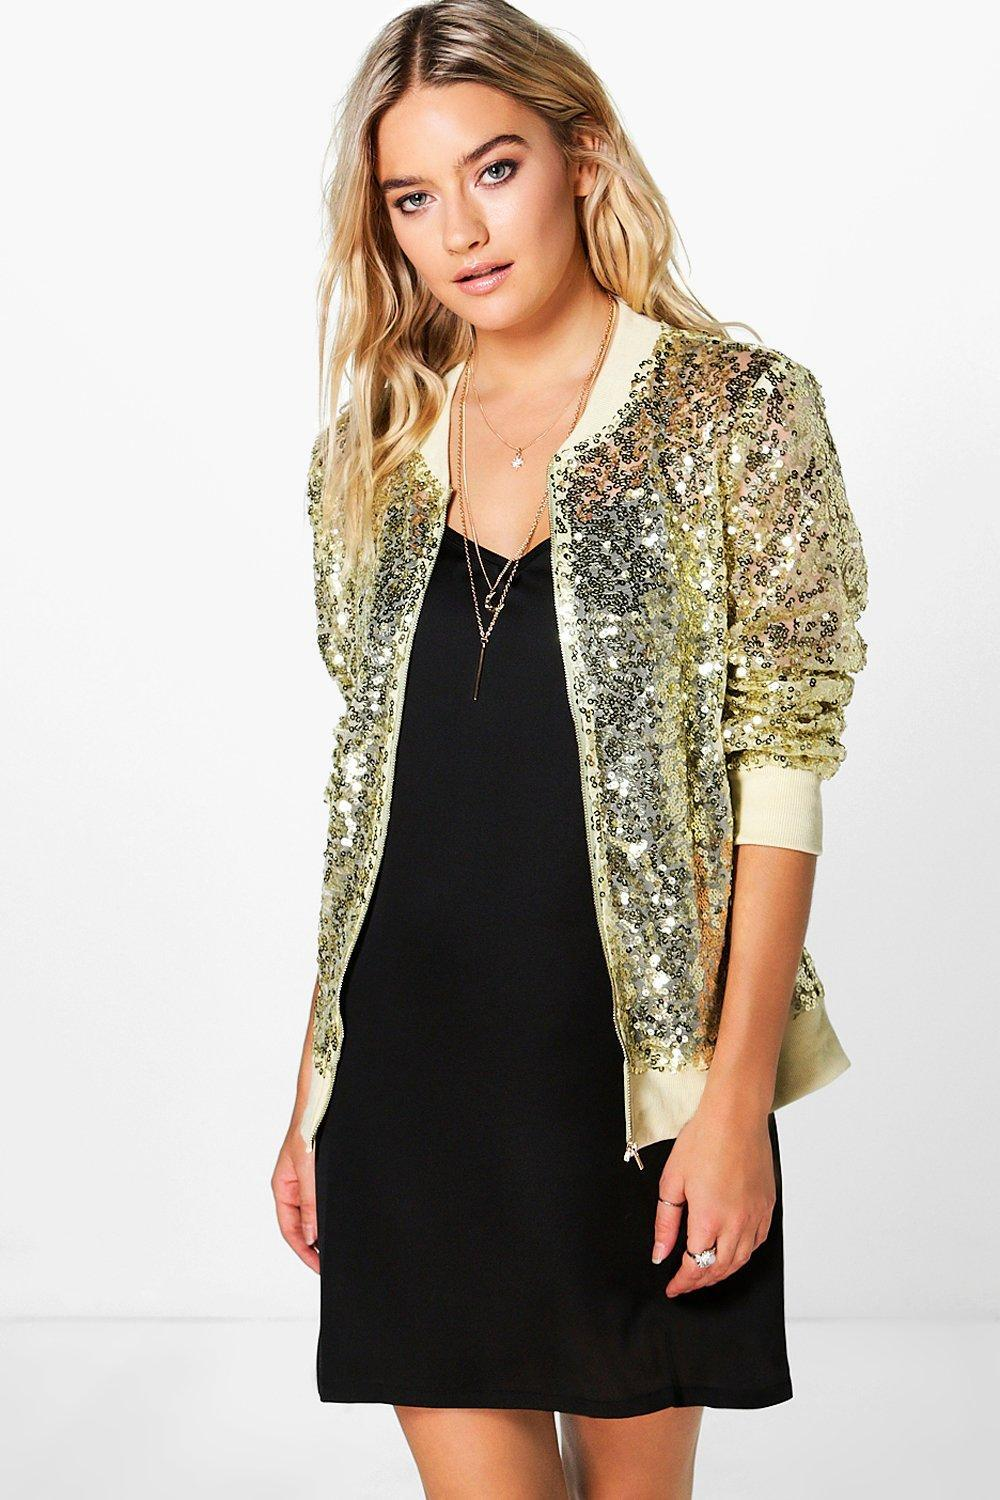 Sequin Mesh Bomber Jacket Gold - pattern: plain; collar: round collar/collarless; fit: slim fit; style: bomber; predominant colour: gold; occasions: casual; length: standard; fibres: polyester/polyamide - 100%; sleeve length: long sleeve; sleeve style: standard; texture group: sheer fabrics/chiffon/organza etc.; collar break: high; pattern type: fabric; embellishment: sequins; season: a/w 2016; wardrobe: highlight; embellishment location: all over